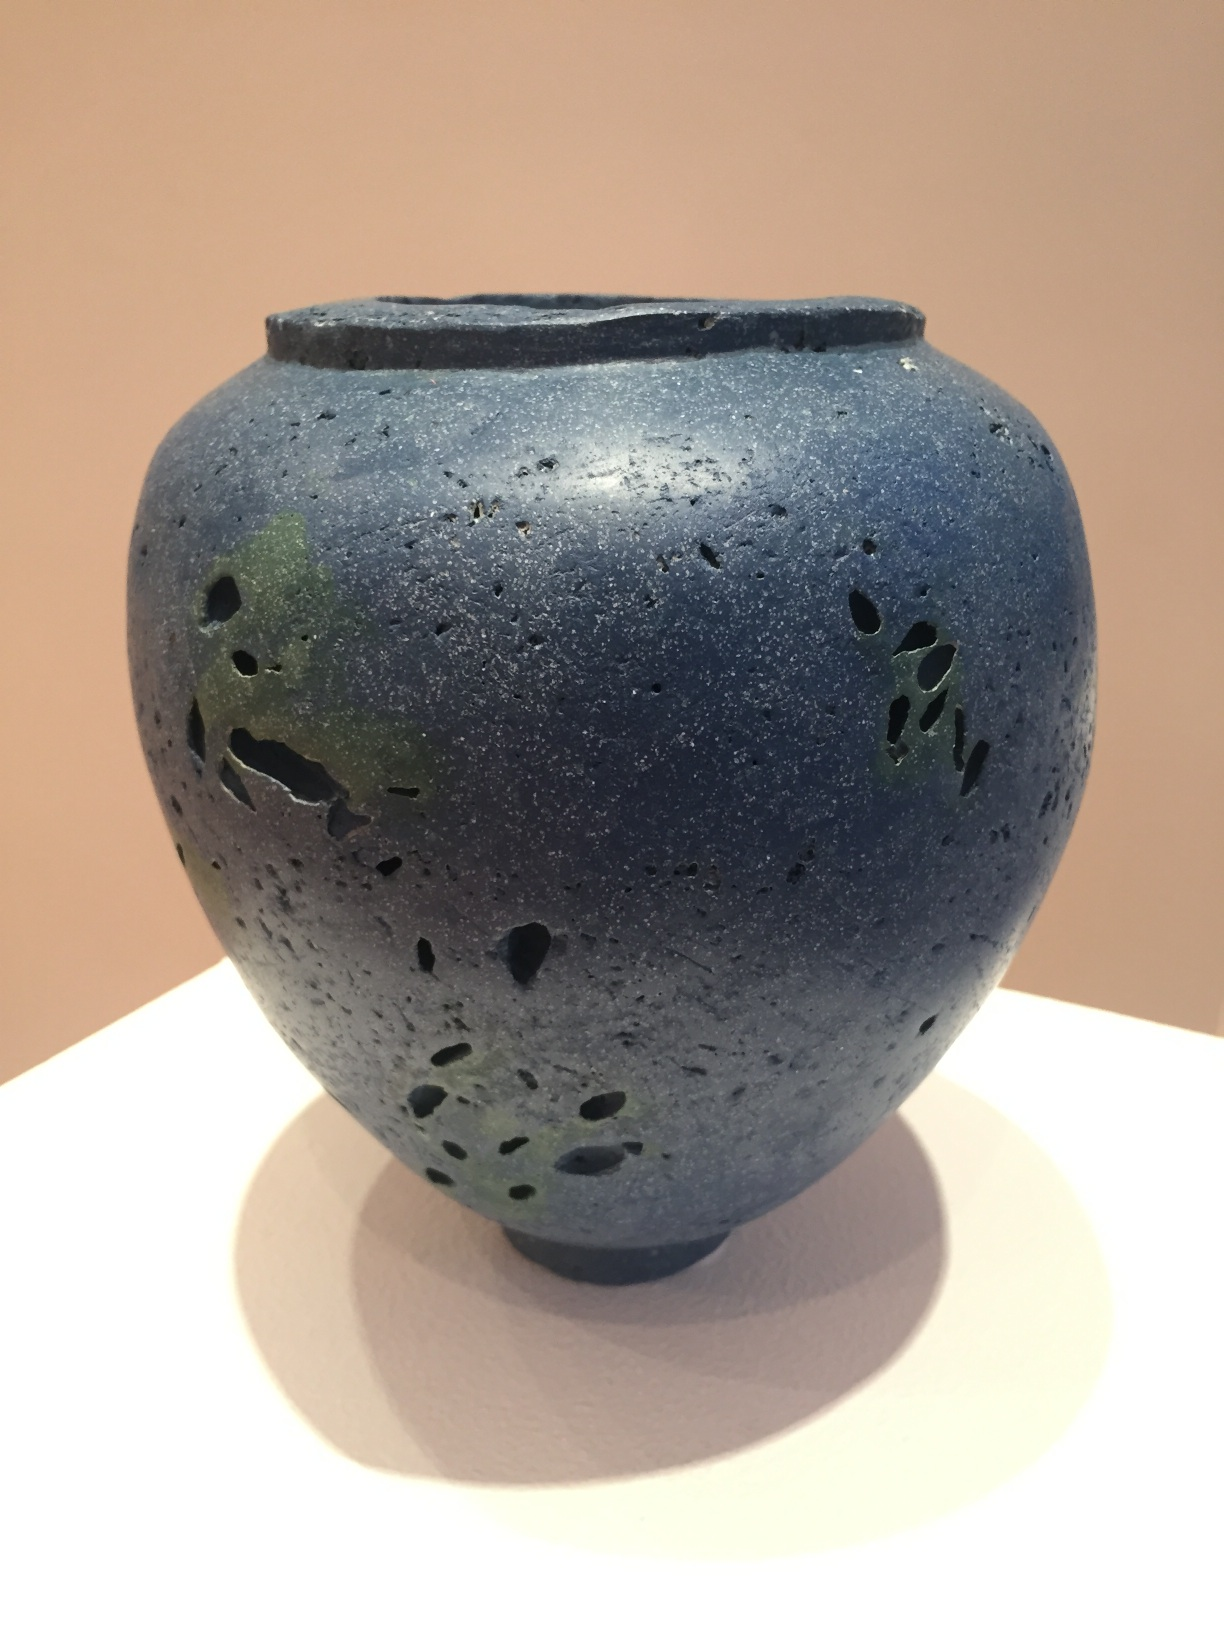 Kathleen Standen, Blue and Green Vessel, porcelain clay, organic additions, 19x15cm